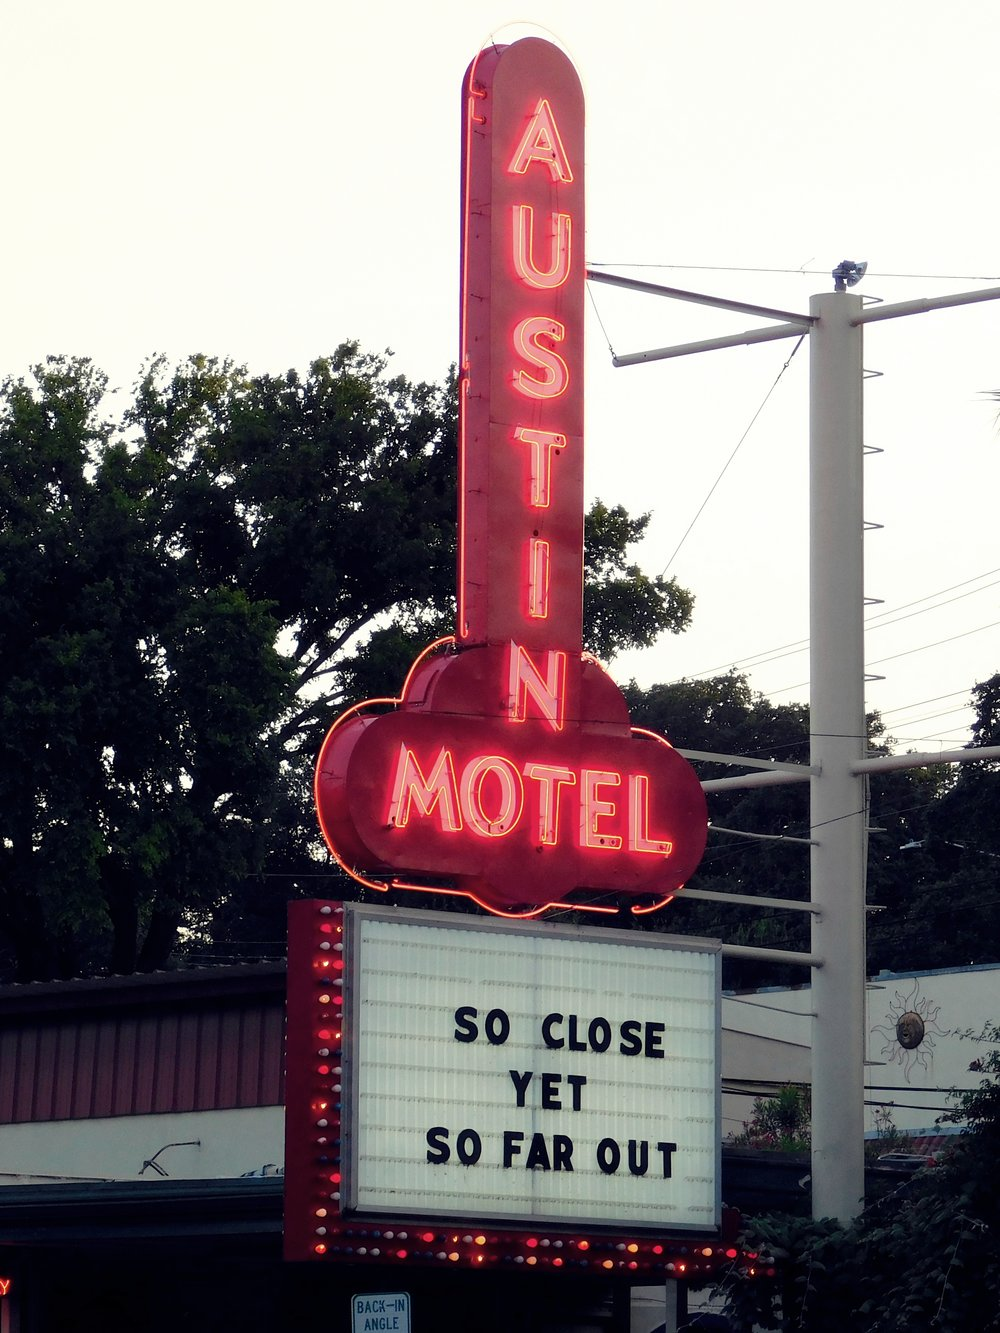 The Austin Motel is the most classic lodging option on South Congress. It's known as much for its retro neon sign as it is for its vintage vibe. The hotel was sold in 2016 but the new owners have pledged to restore the hotel and maintain its charm.